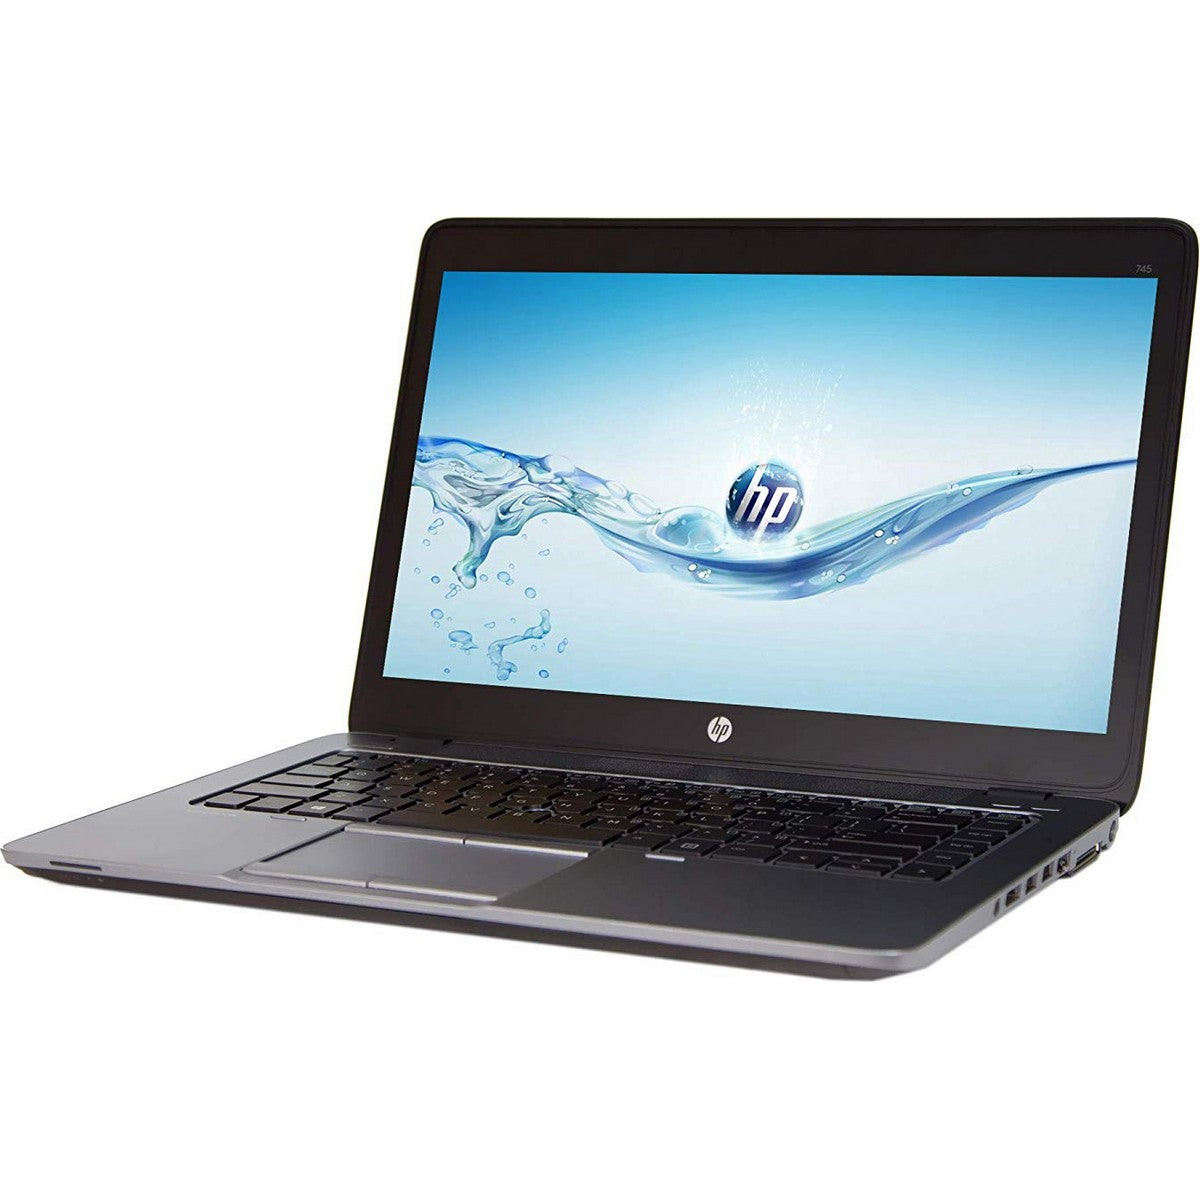 Used HP 745G2 Laptop 14'' HD, Amd A-Series A10-7350B, 8GB RAM, AMD R7 1GB GPU, 500GB HDD, English Keyboard